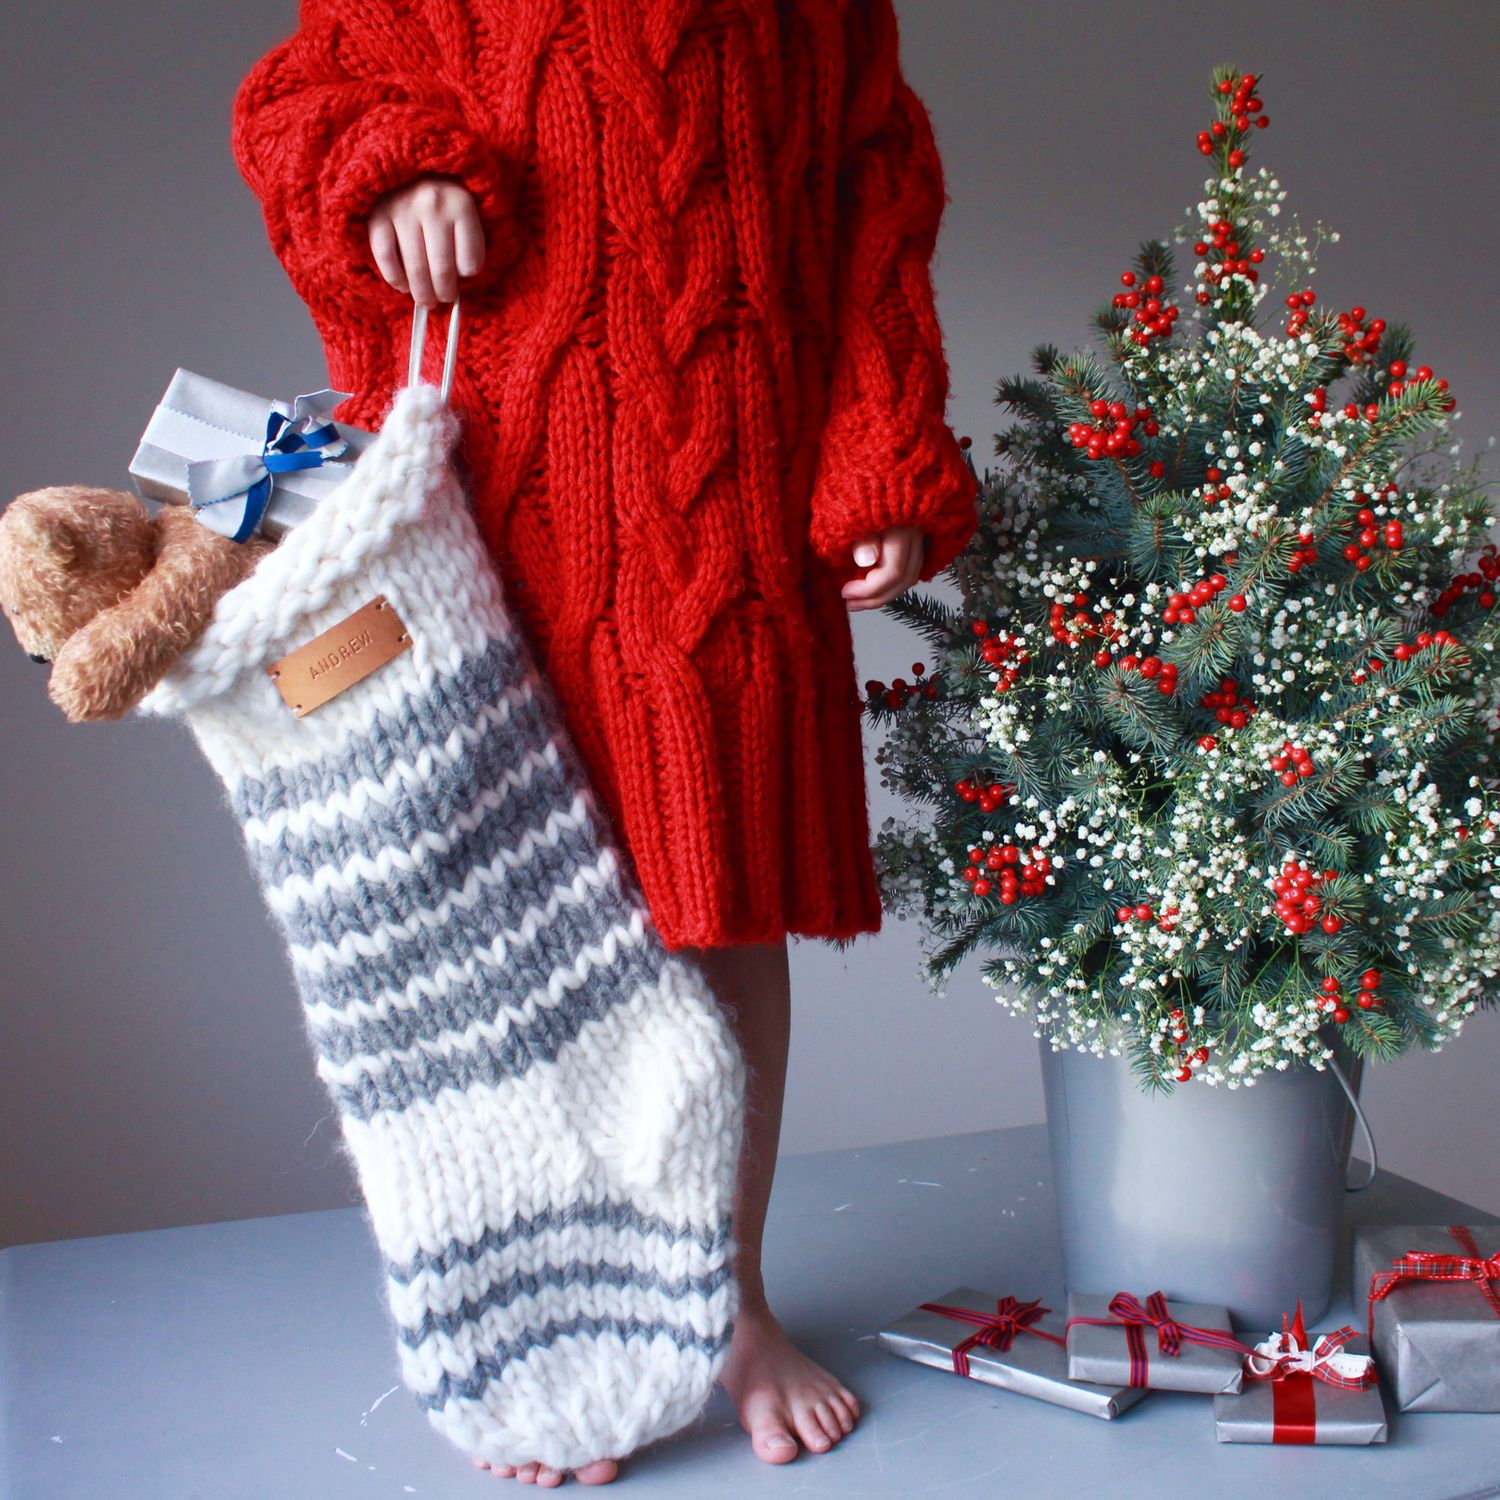 Chunky knit stocking pattern | Knitted christmas stocking patterns, Christmas stockings ...